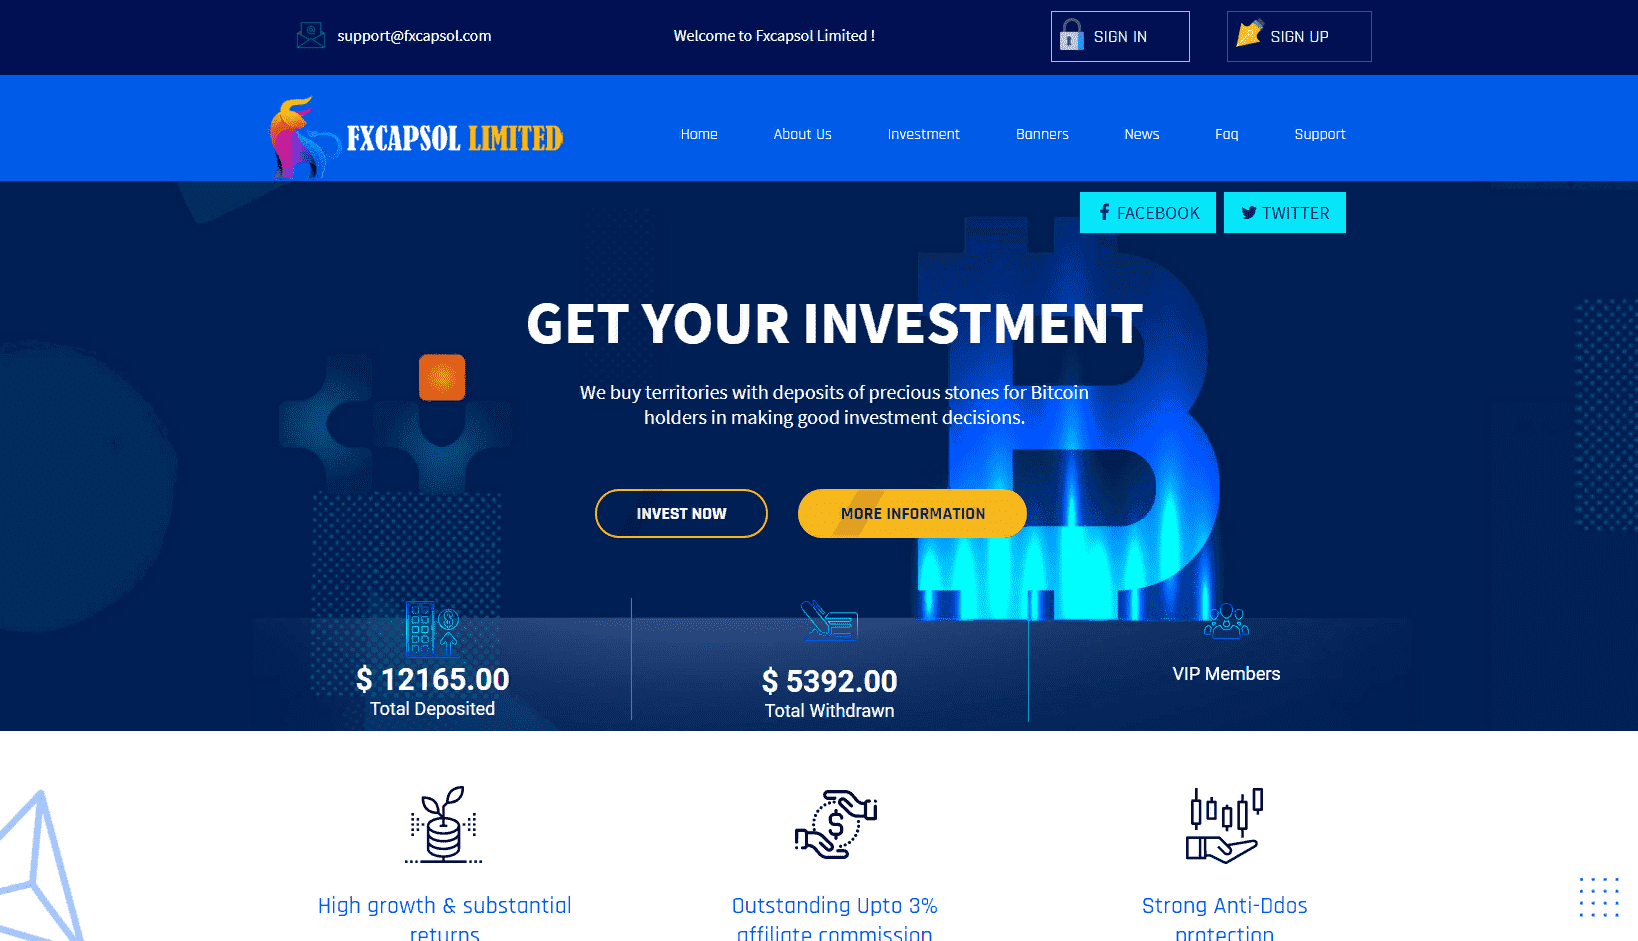 Fxcapsol Limited